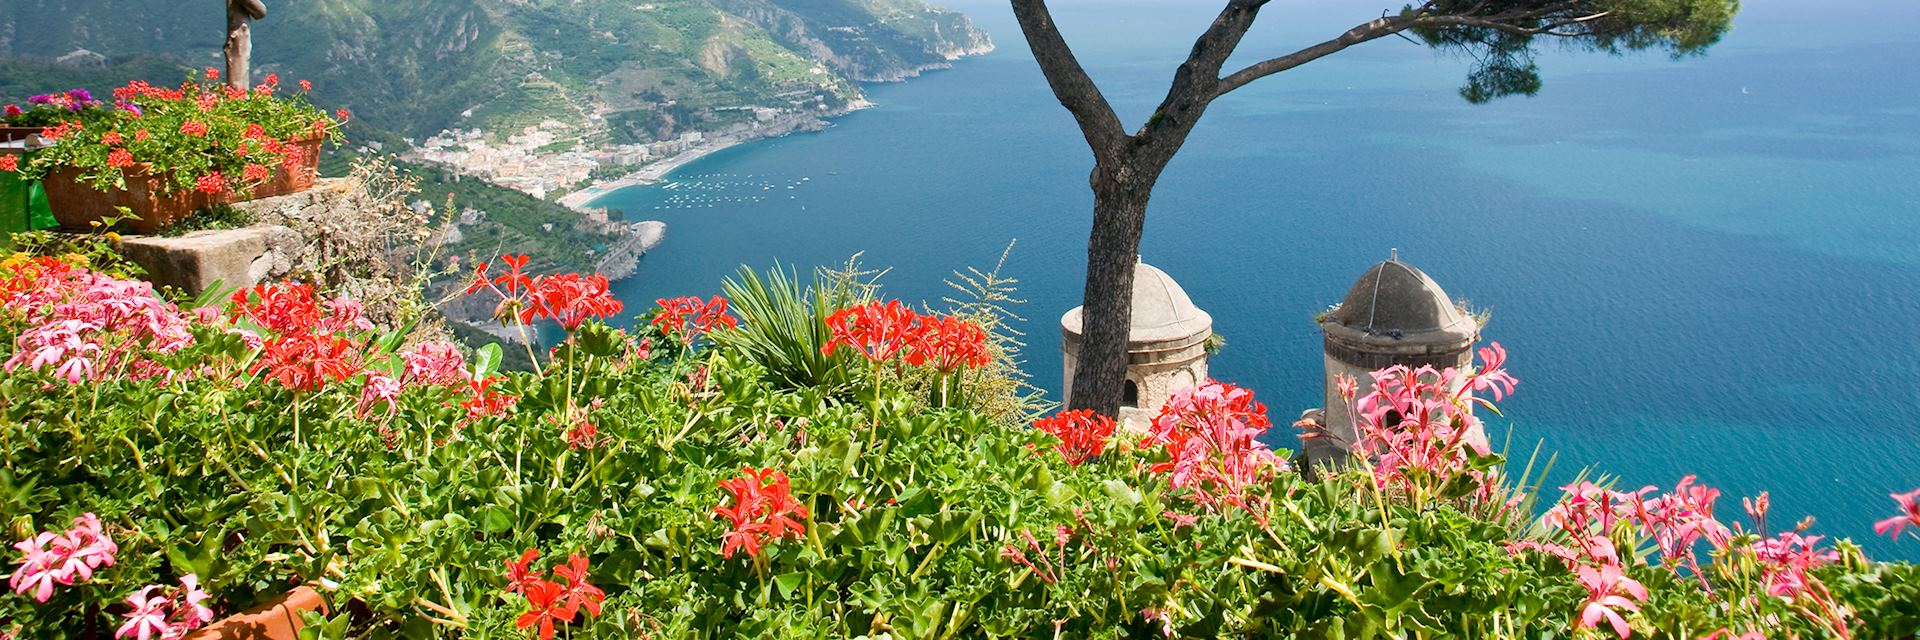 View over San Pantaleone Church, Ravello, Amalfi Coast